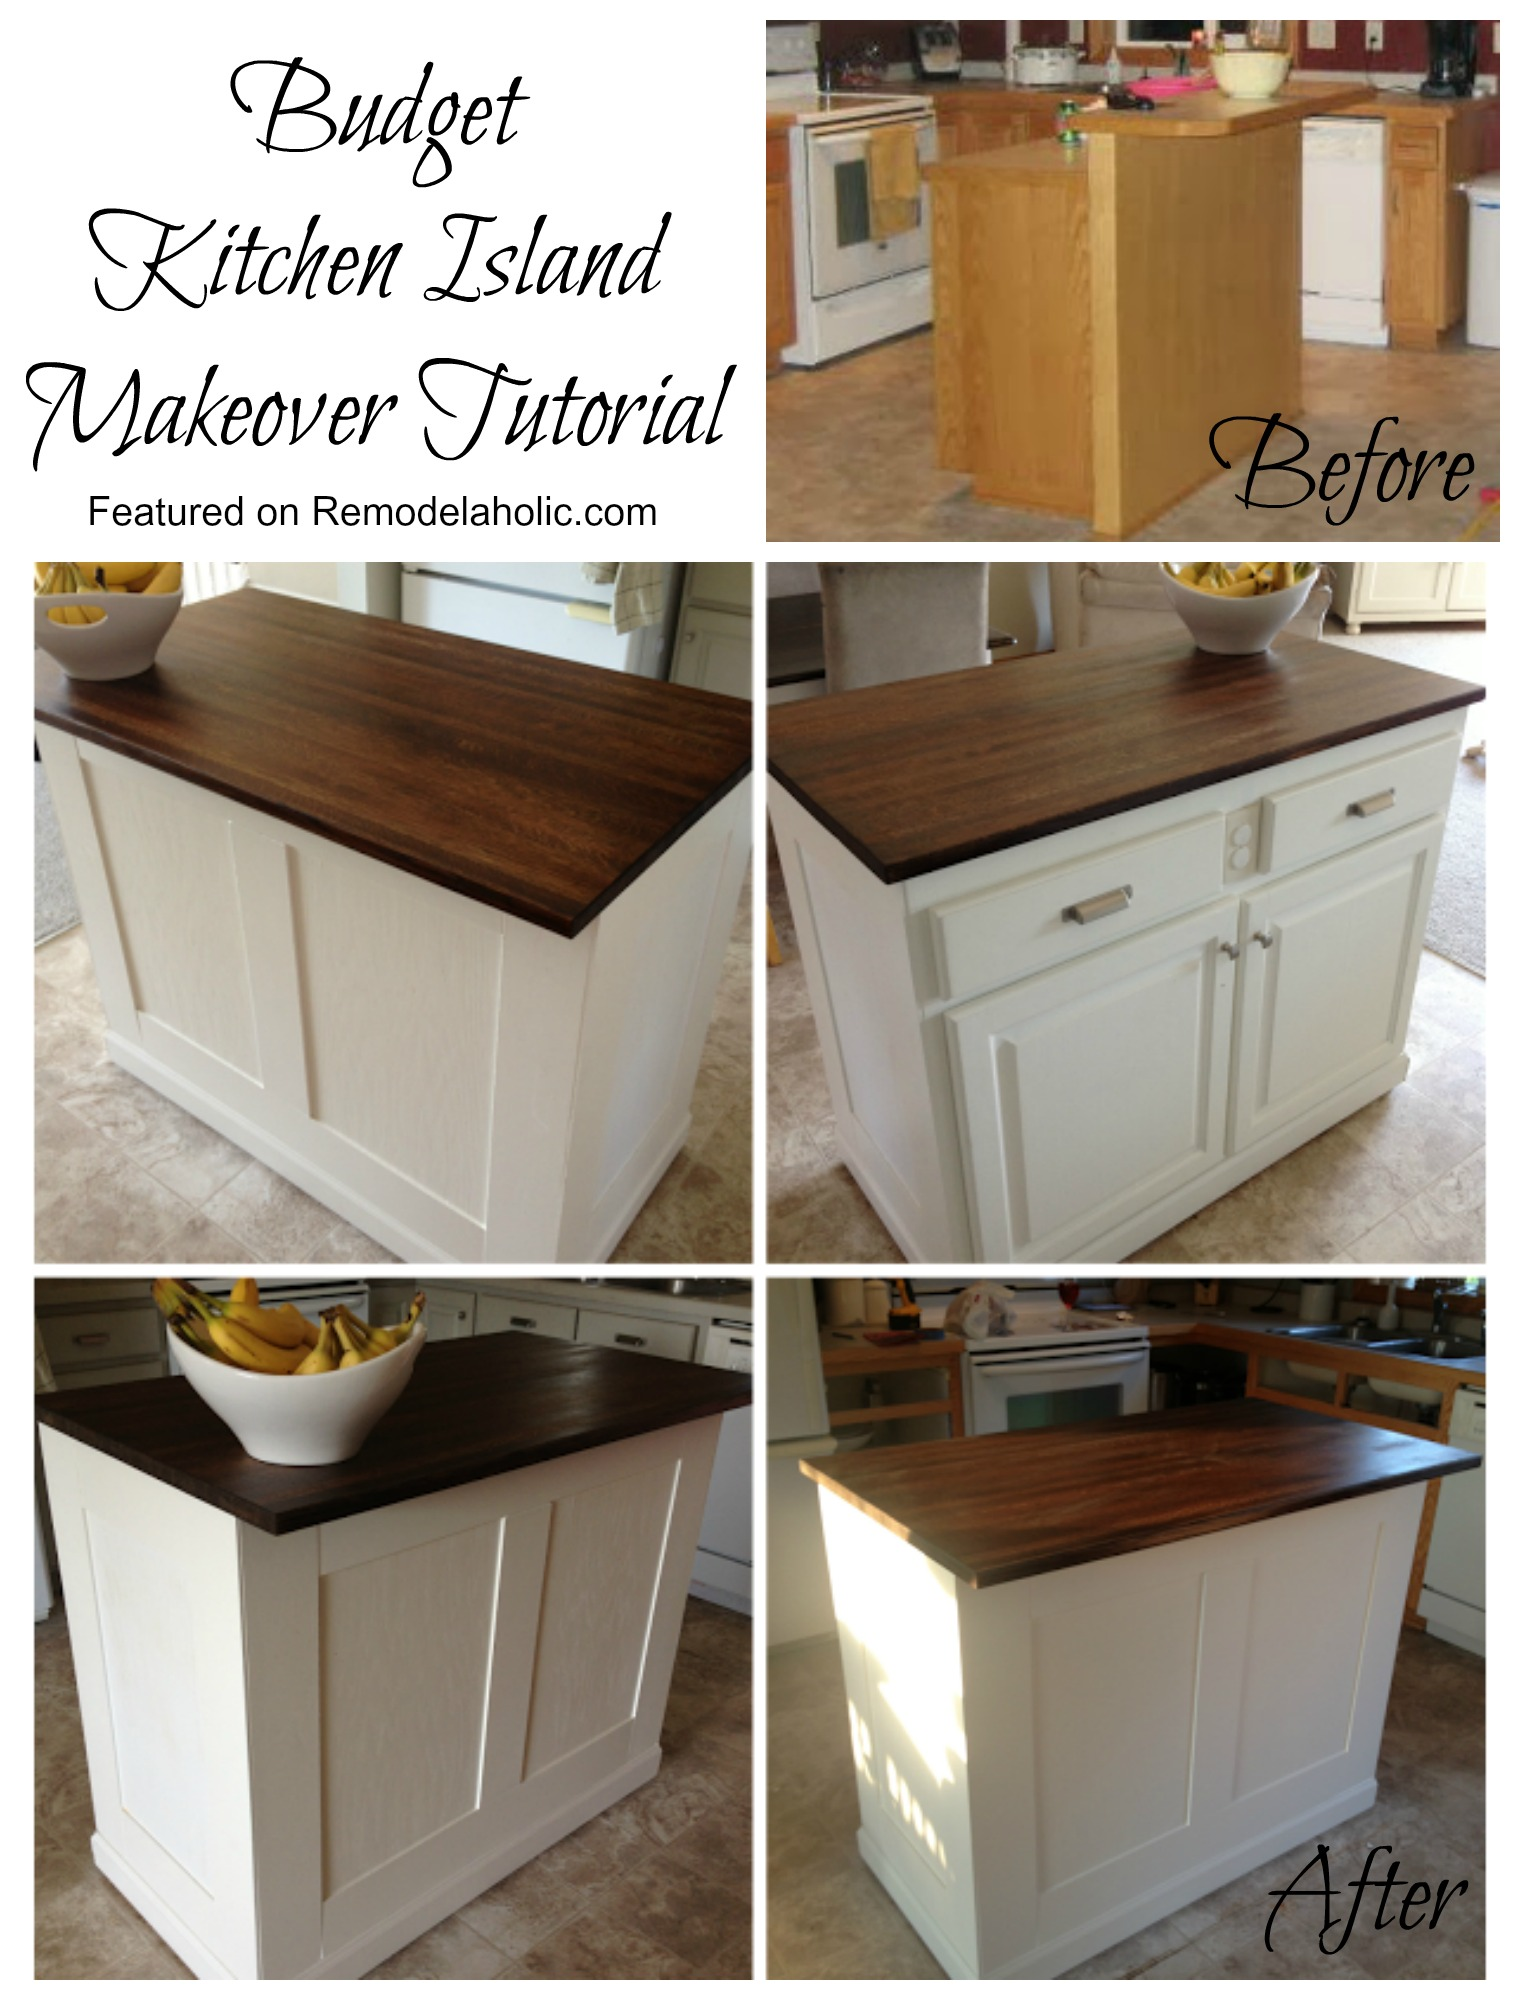 Budget Kitchen Island Makeover Tutorial featured on Remodelaholic & Remodelaholic | Budget-Friendly Board and Batten Kitchen Island Makeover